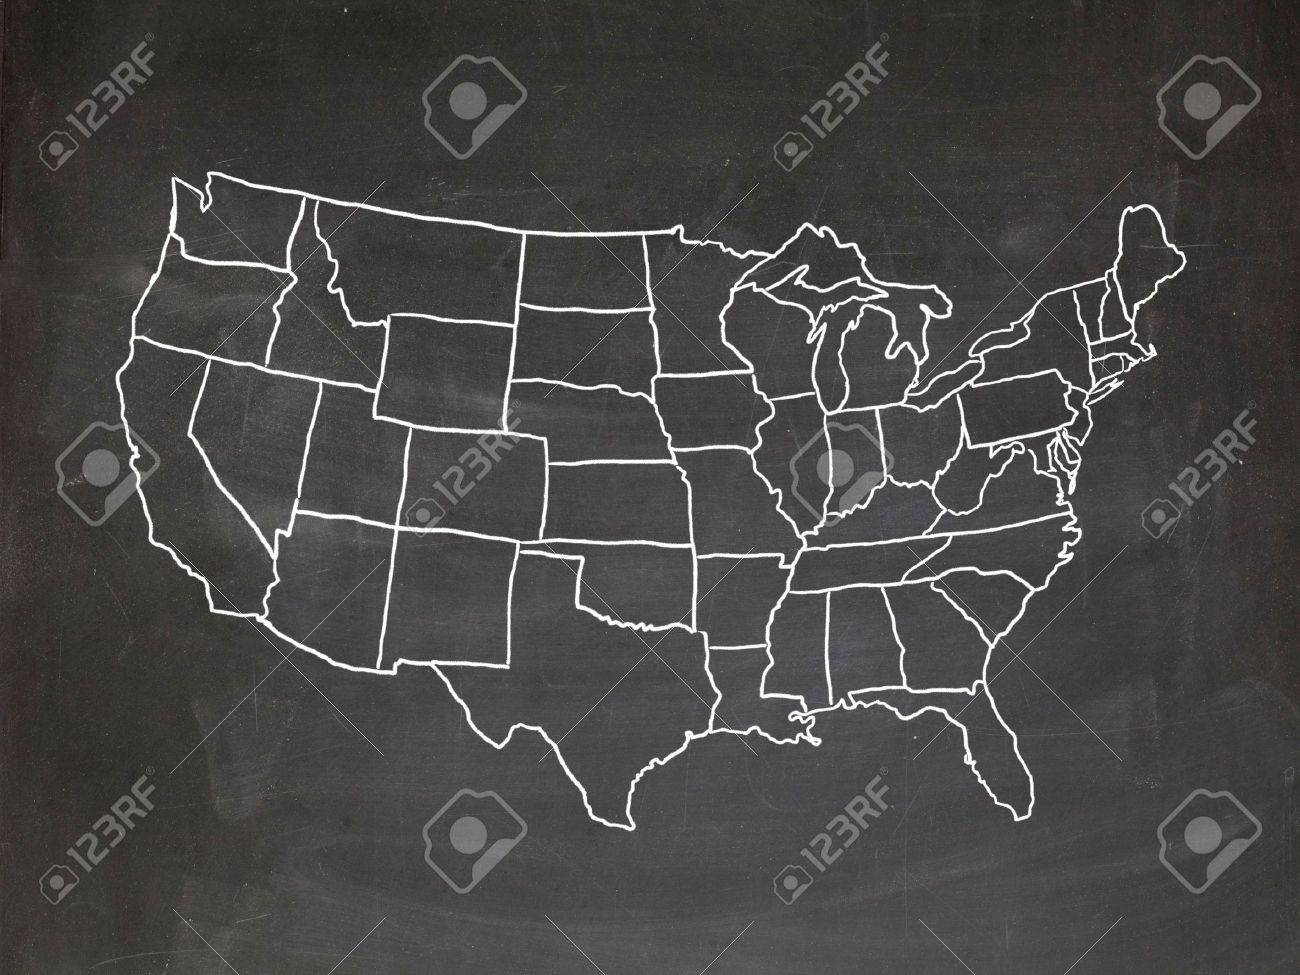 Chalkboard Map Of Us Map Of The US Drawn On A Chalkboard Stock Photo, Picture And